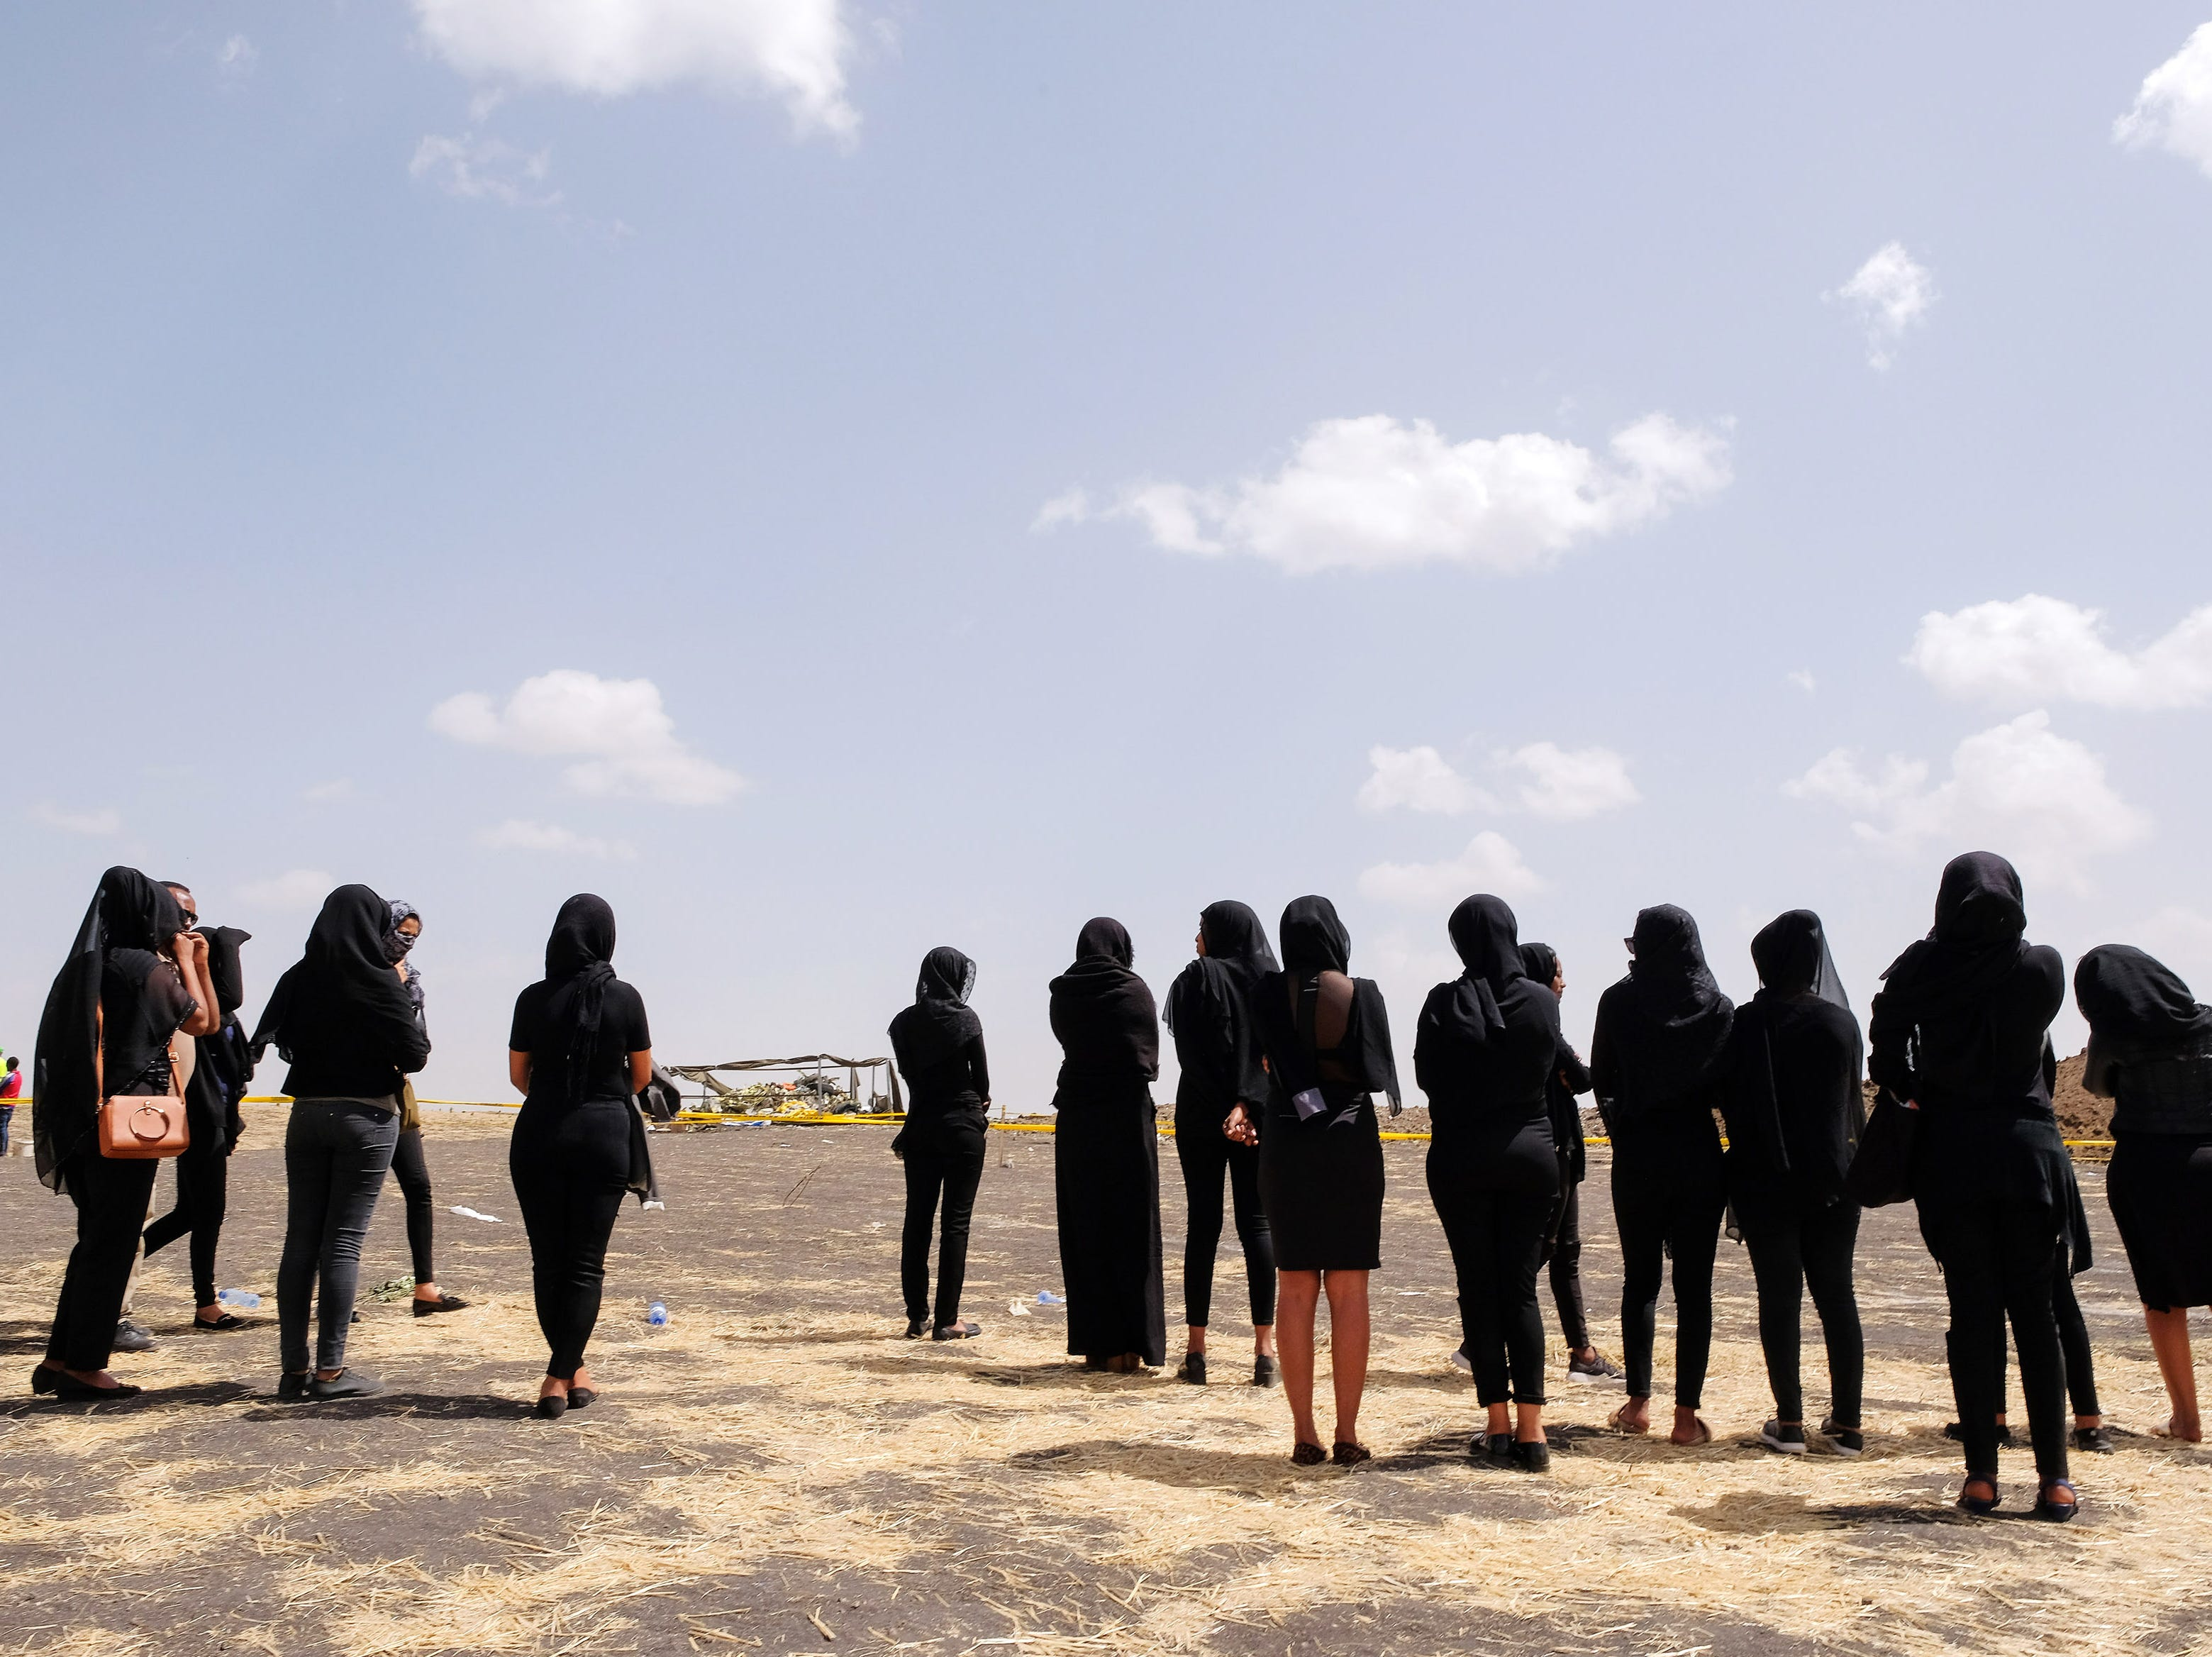 Mourners, believed to be Ethiopian Airlines cabin crew members, arrive to pay their respects at the crash site of Ethiopian Airlines Flight ET302 on March 14, 2019 in Ejere, Ethiopia. All 157 passengers and crew perished after the Ethiopian Airlines Boeing 737 Max 8 Flight came down six minutes after taking off from Bole Airport.